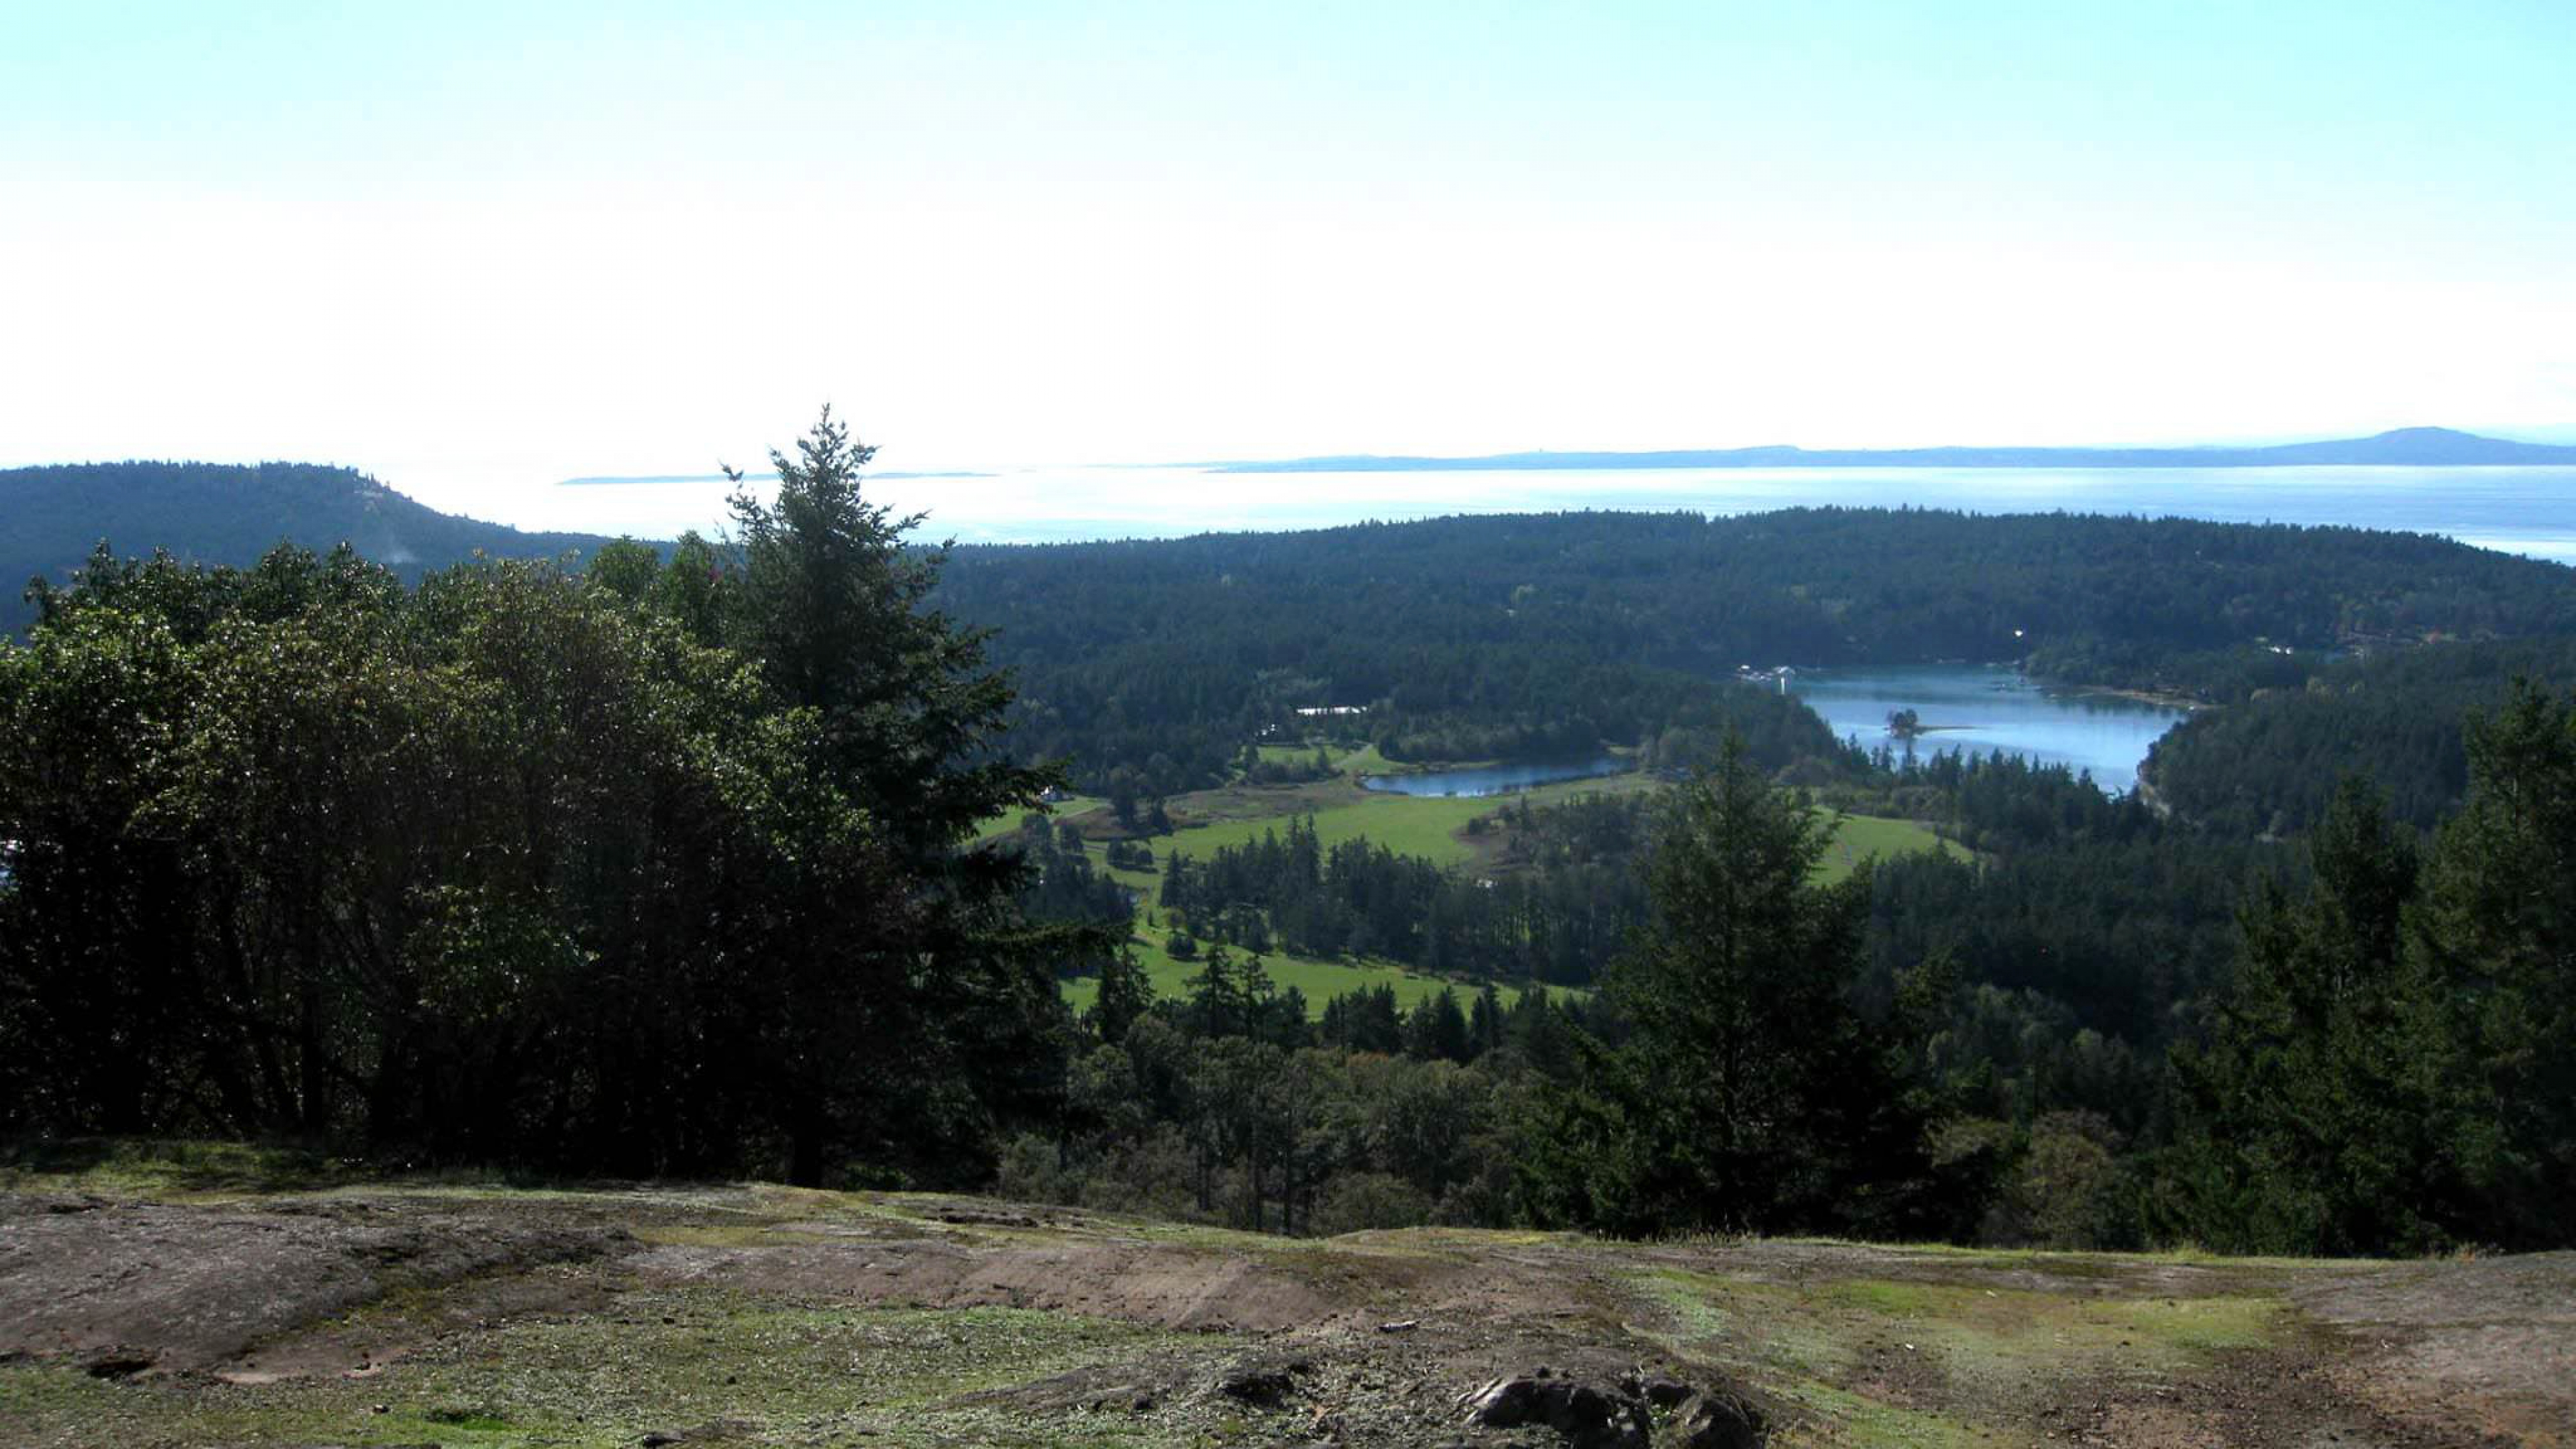 A look across the green-treed and blue-oceaned bay from a summit at San Juan Islands National Historical Park